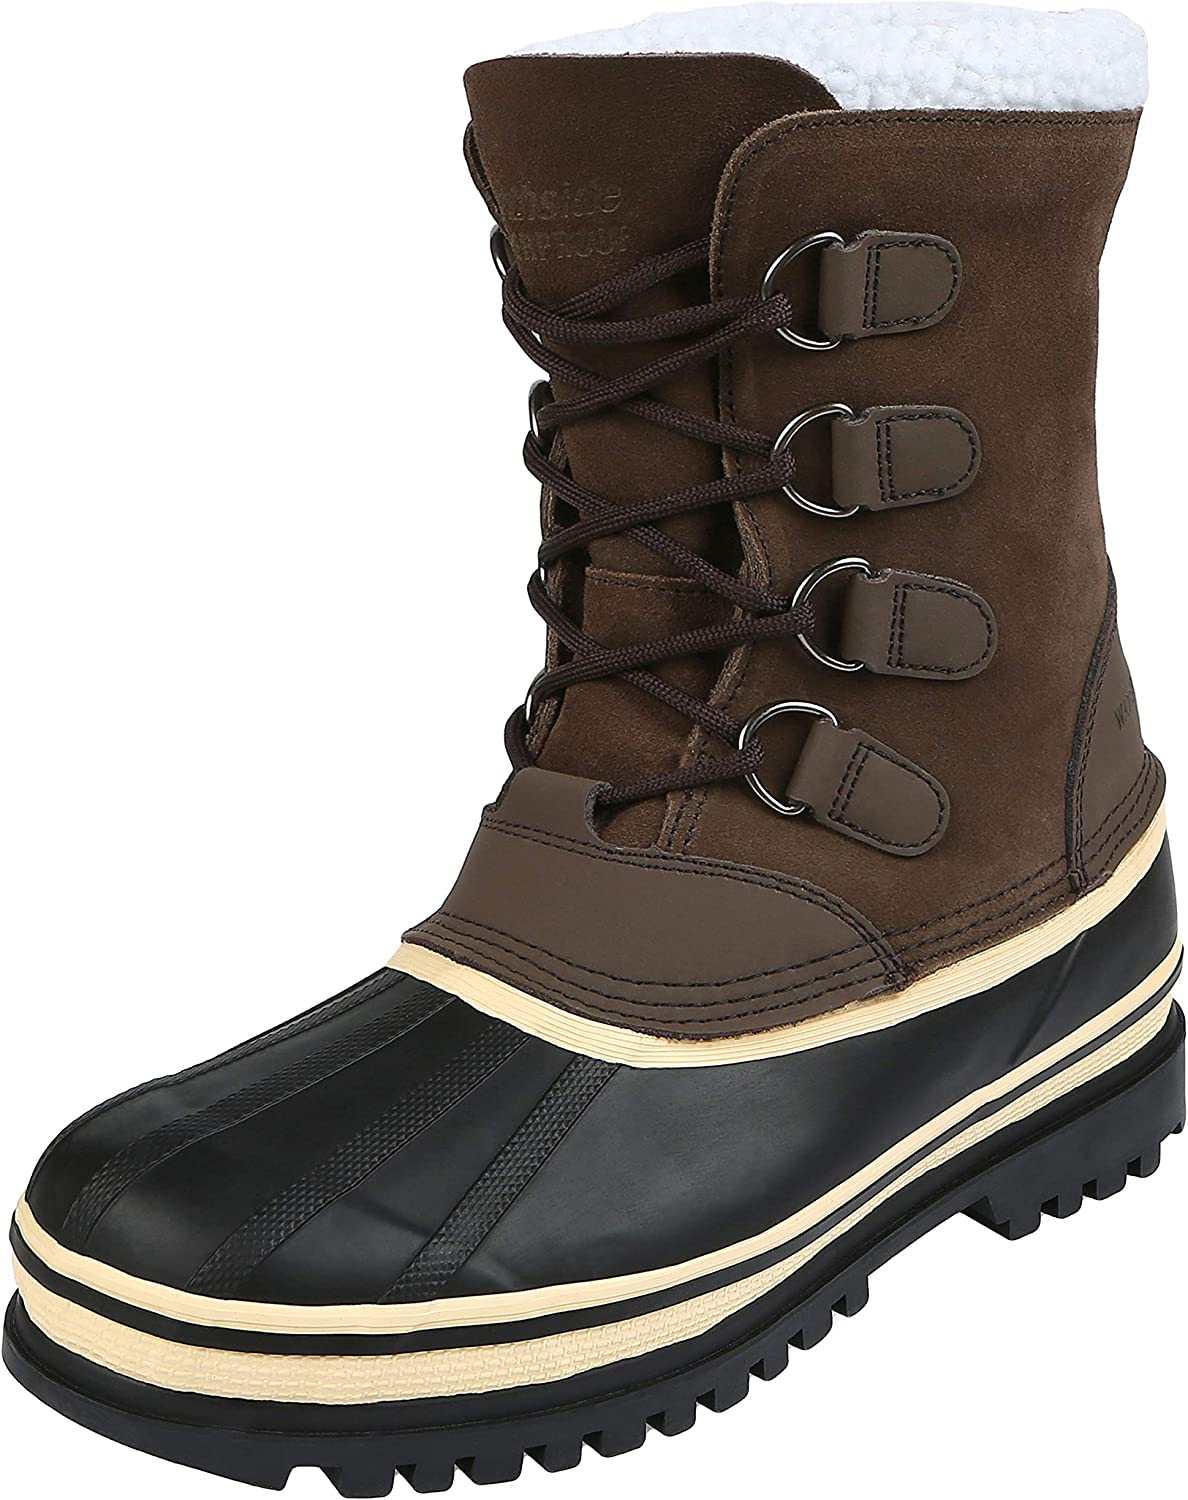 Northside 1 year warranty OFFicial store Men's Back Country Waterproof Pack Boot